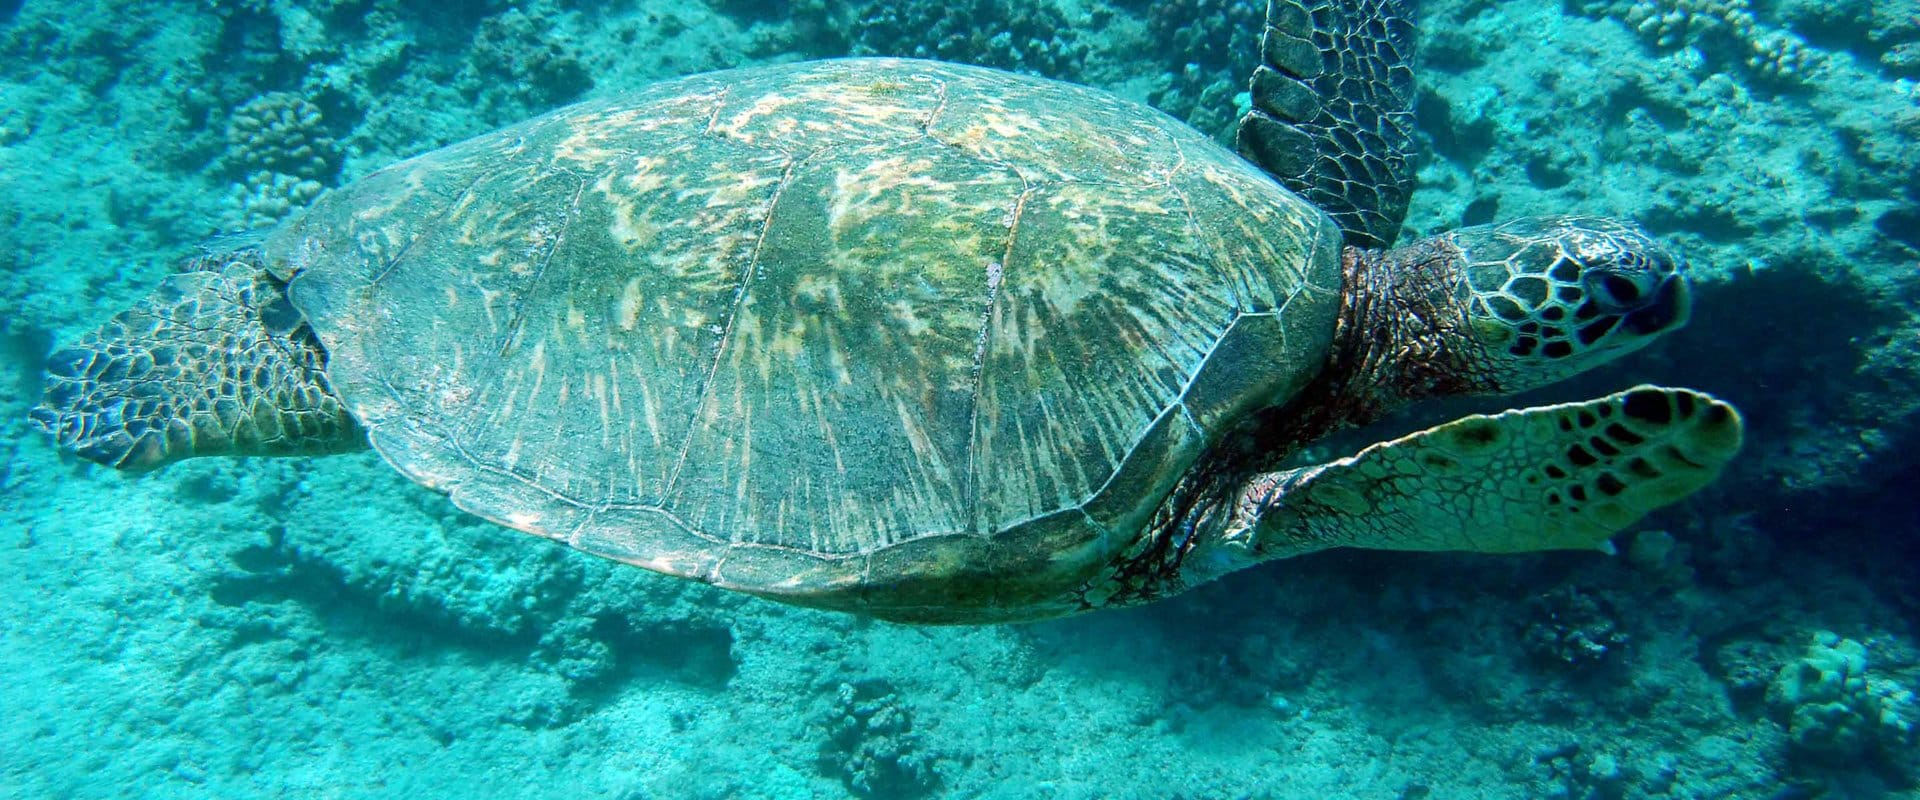 Snorkel Among Reef, Sea Turtles, and Tropical Fish